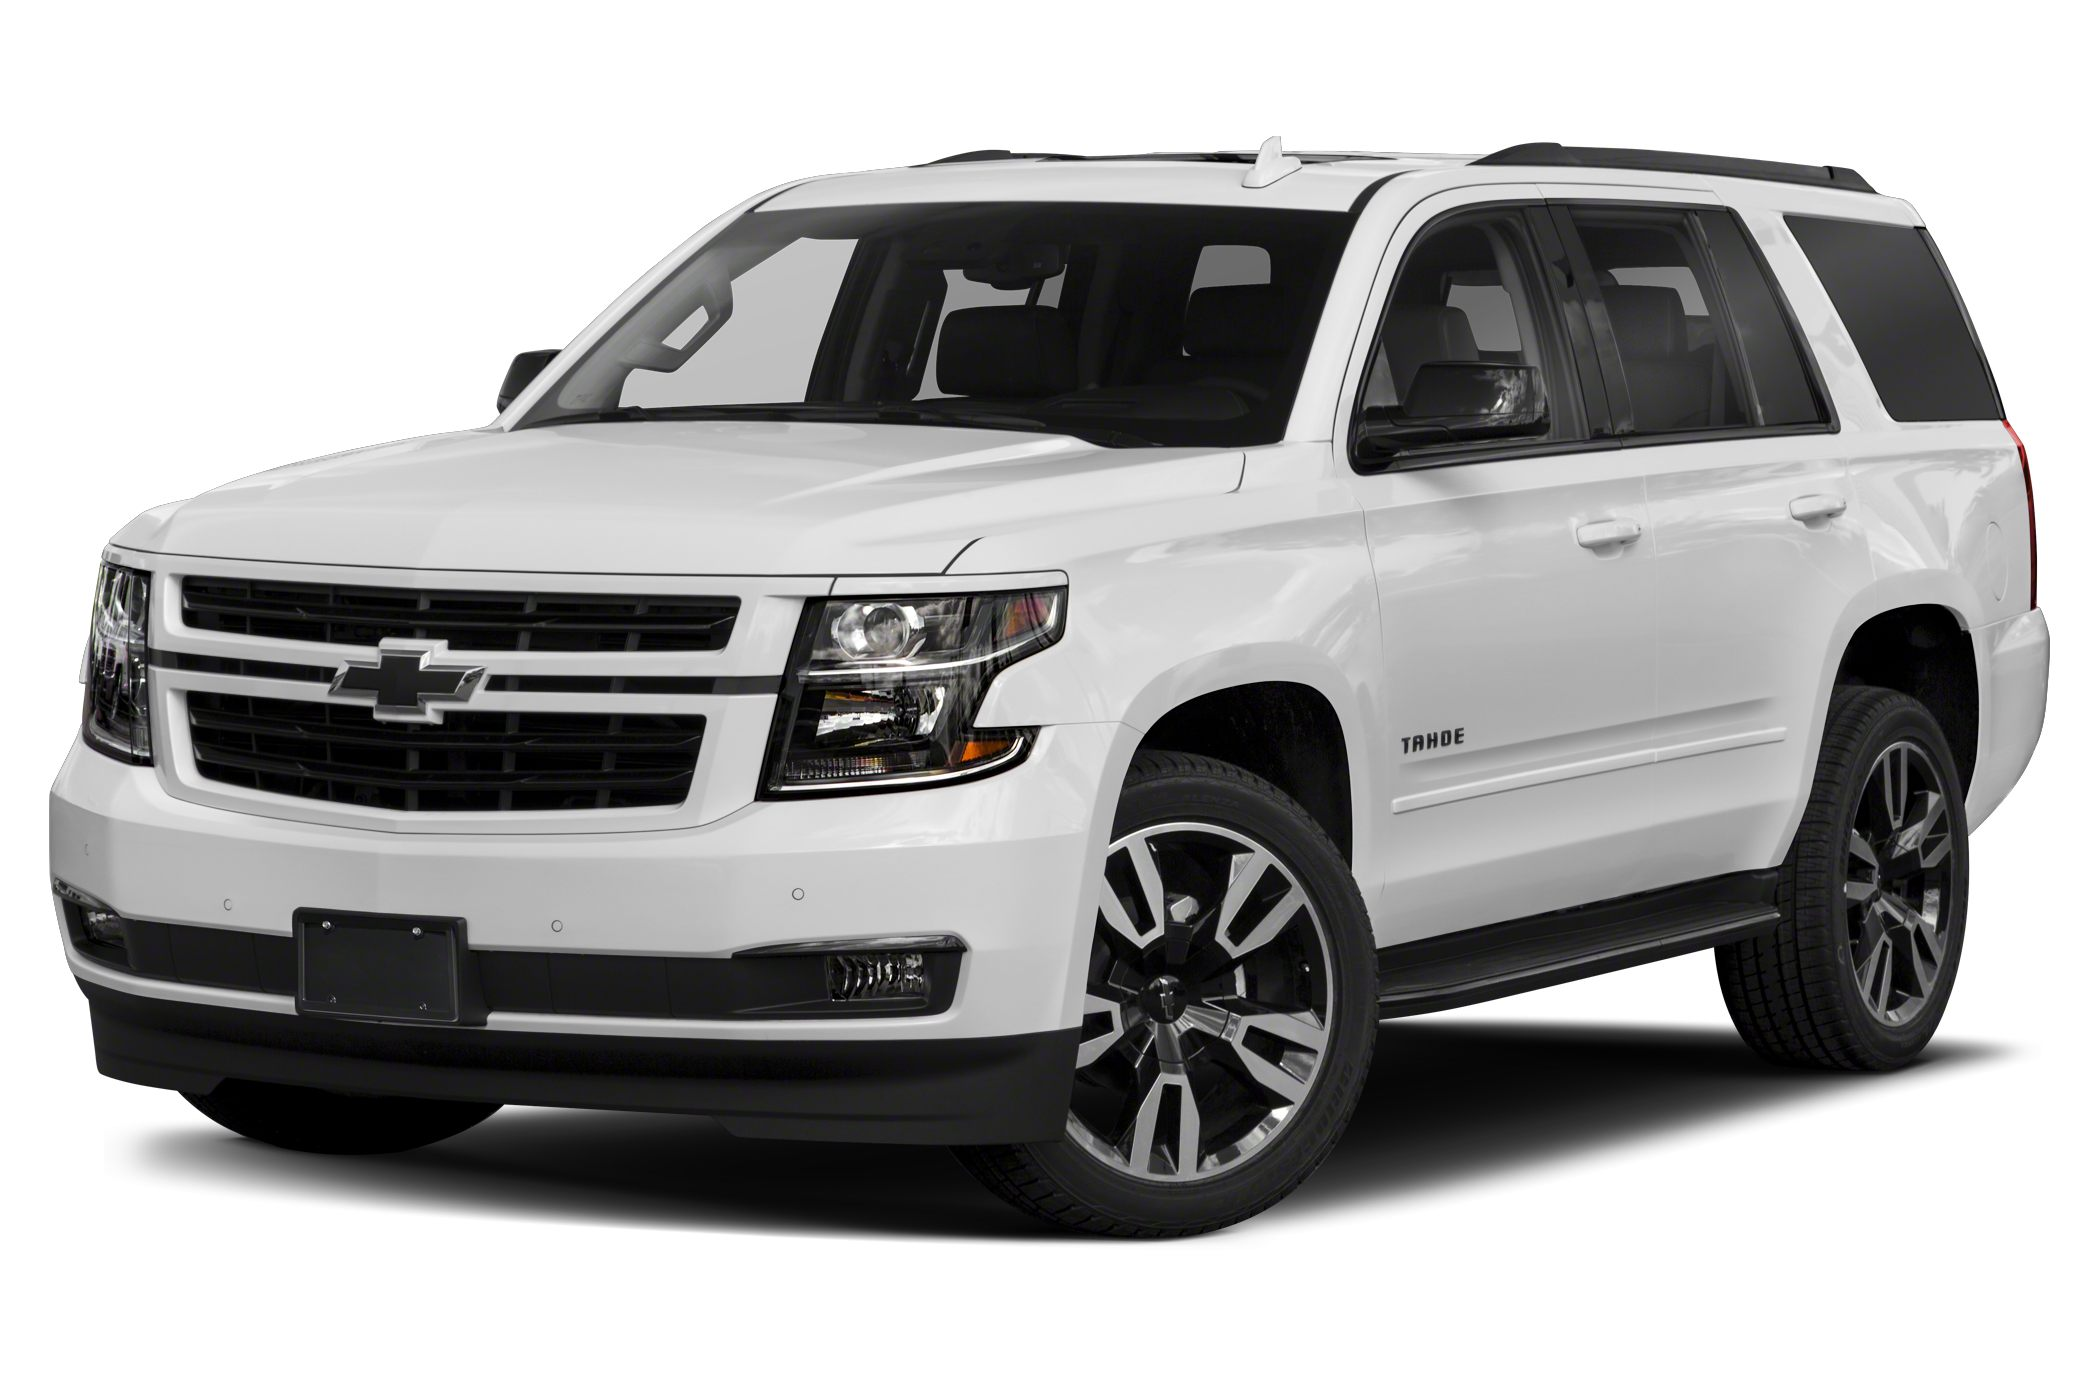 2018 Chevrolet Tahoe Premier 4x4 Pricing and Options